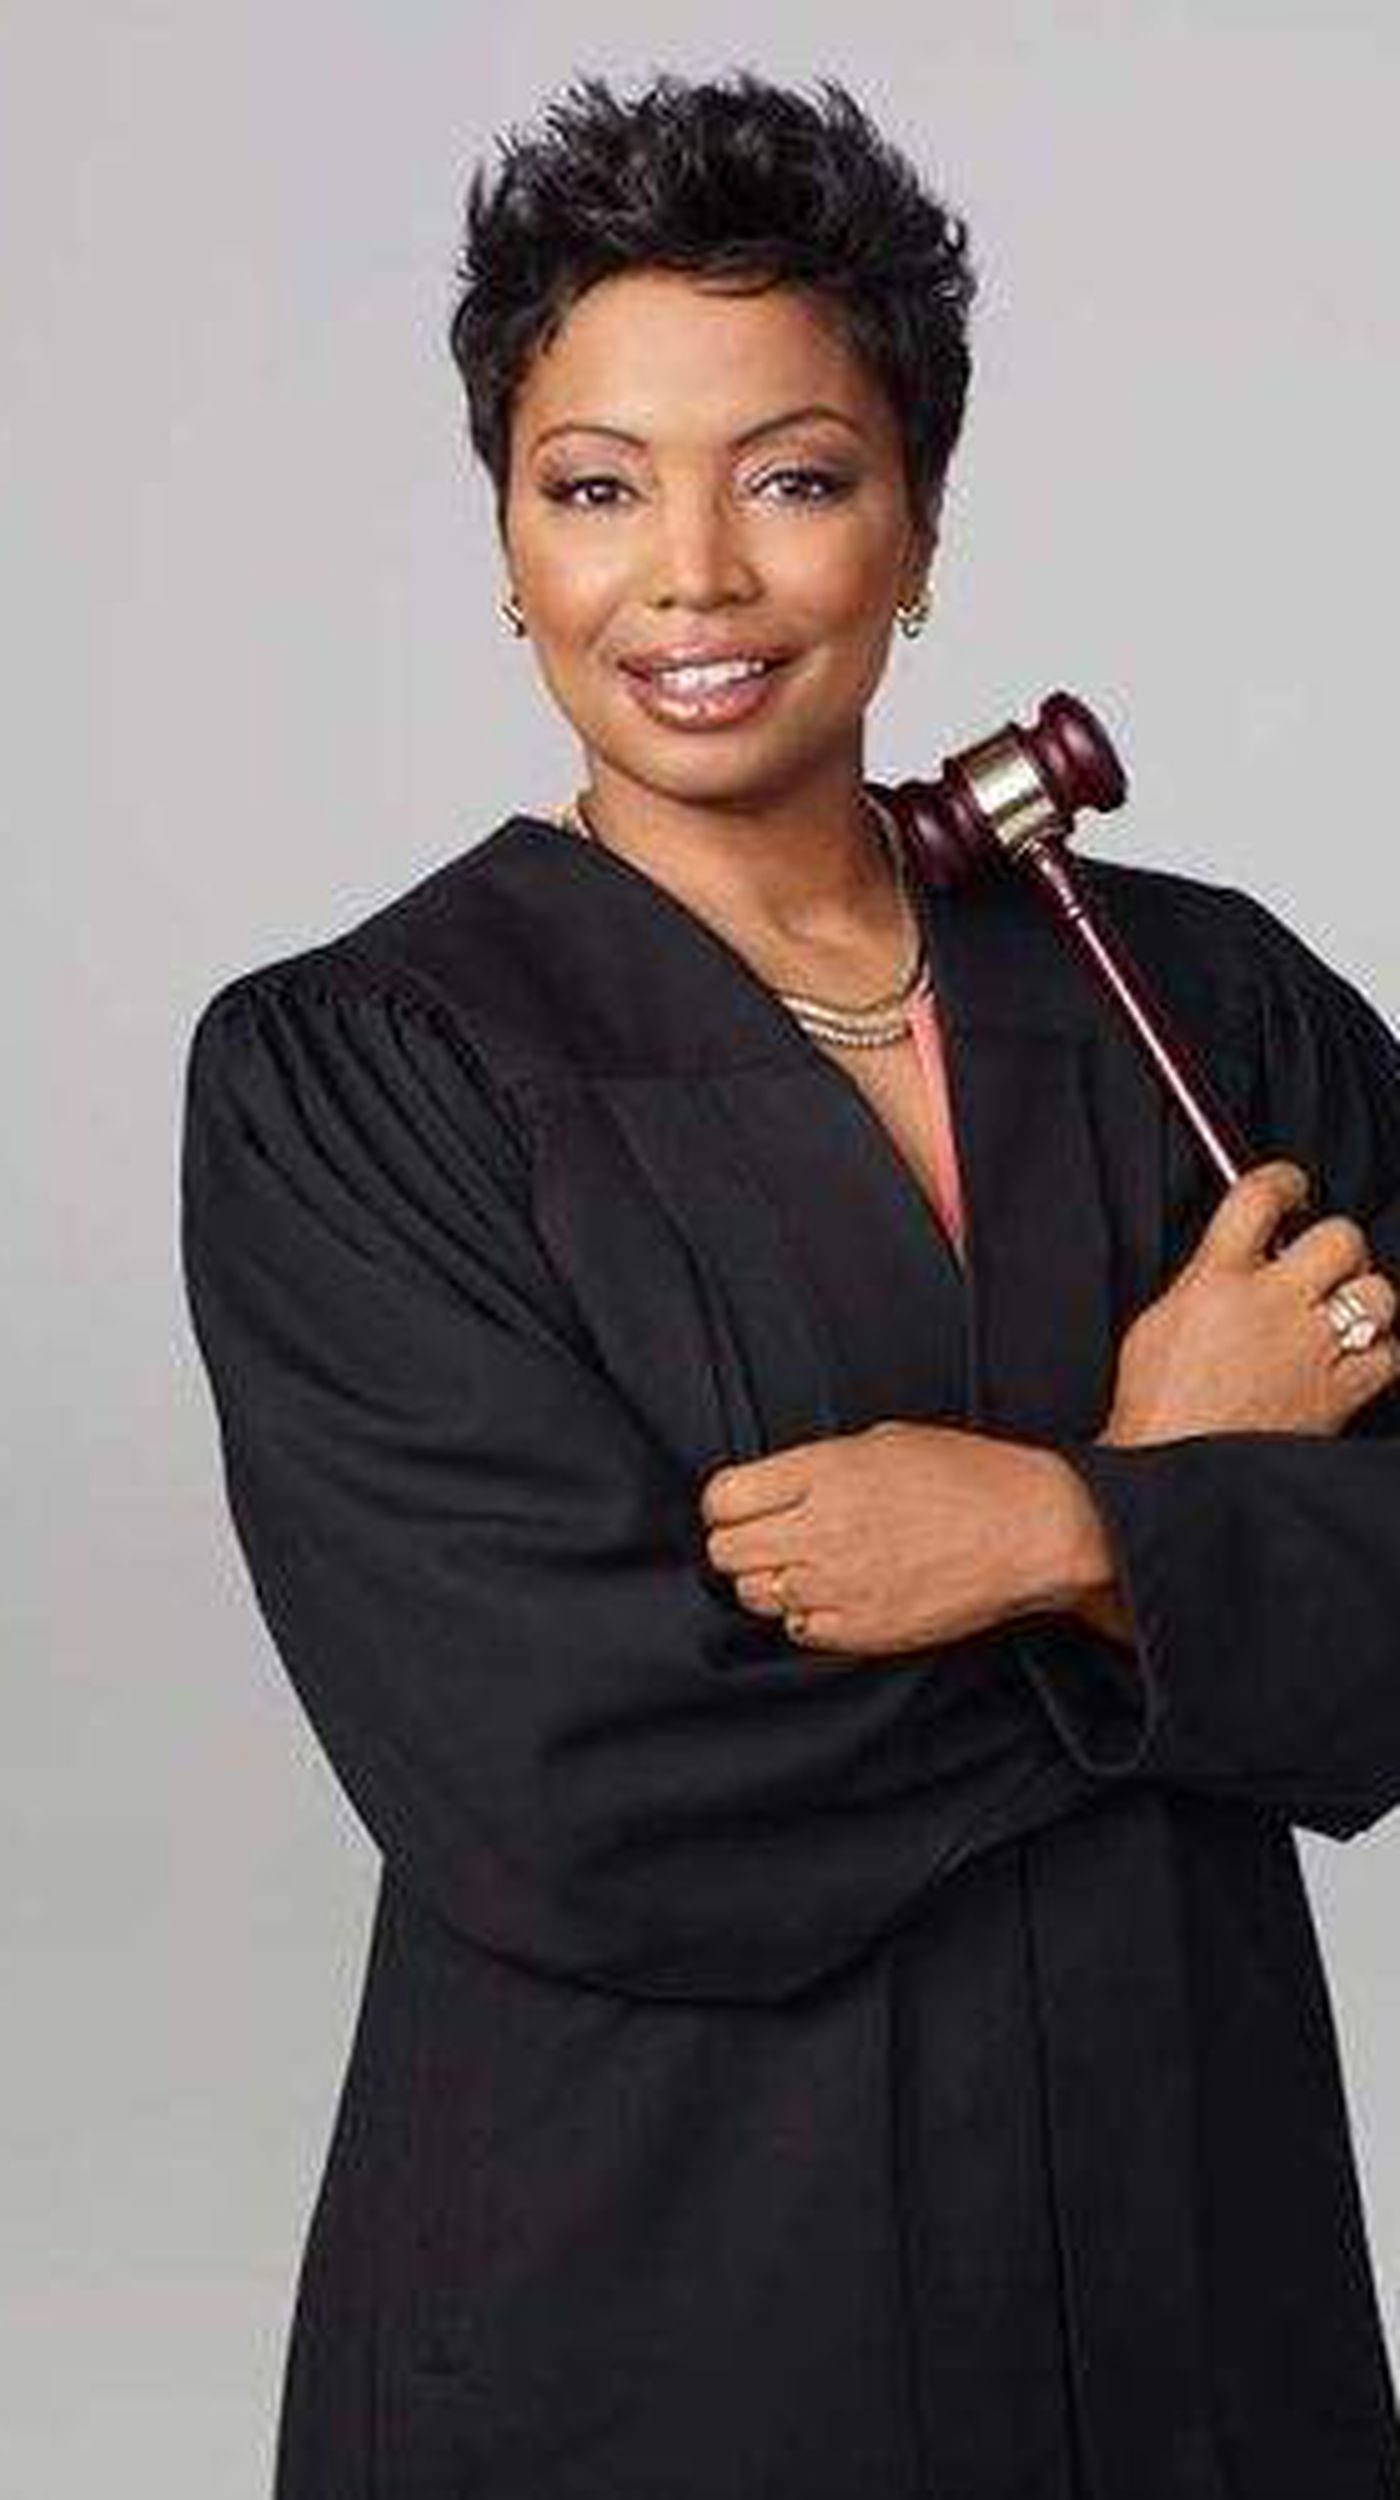 Who is judge lynn toler married to